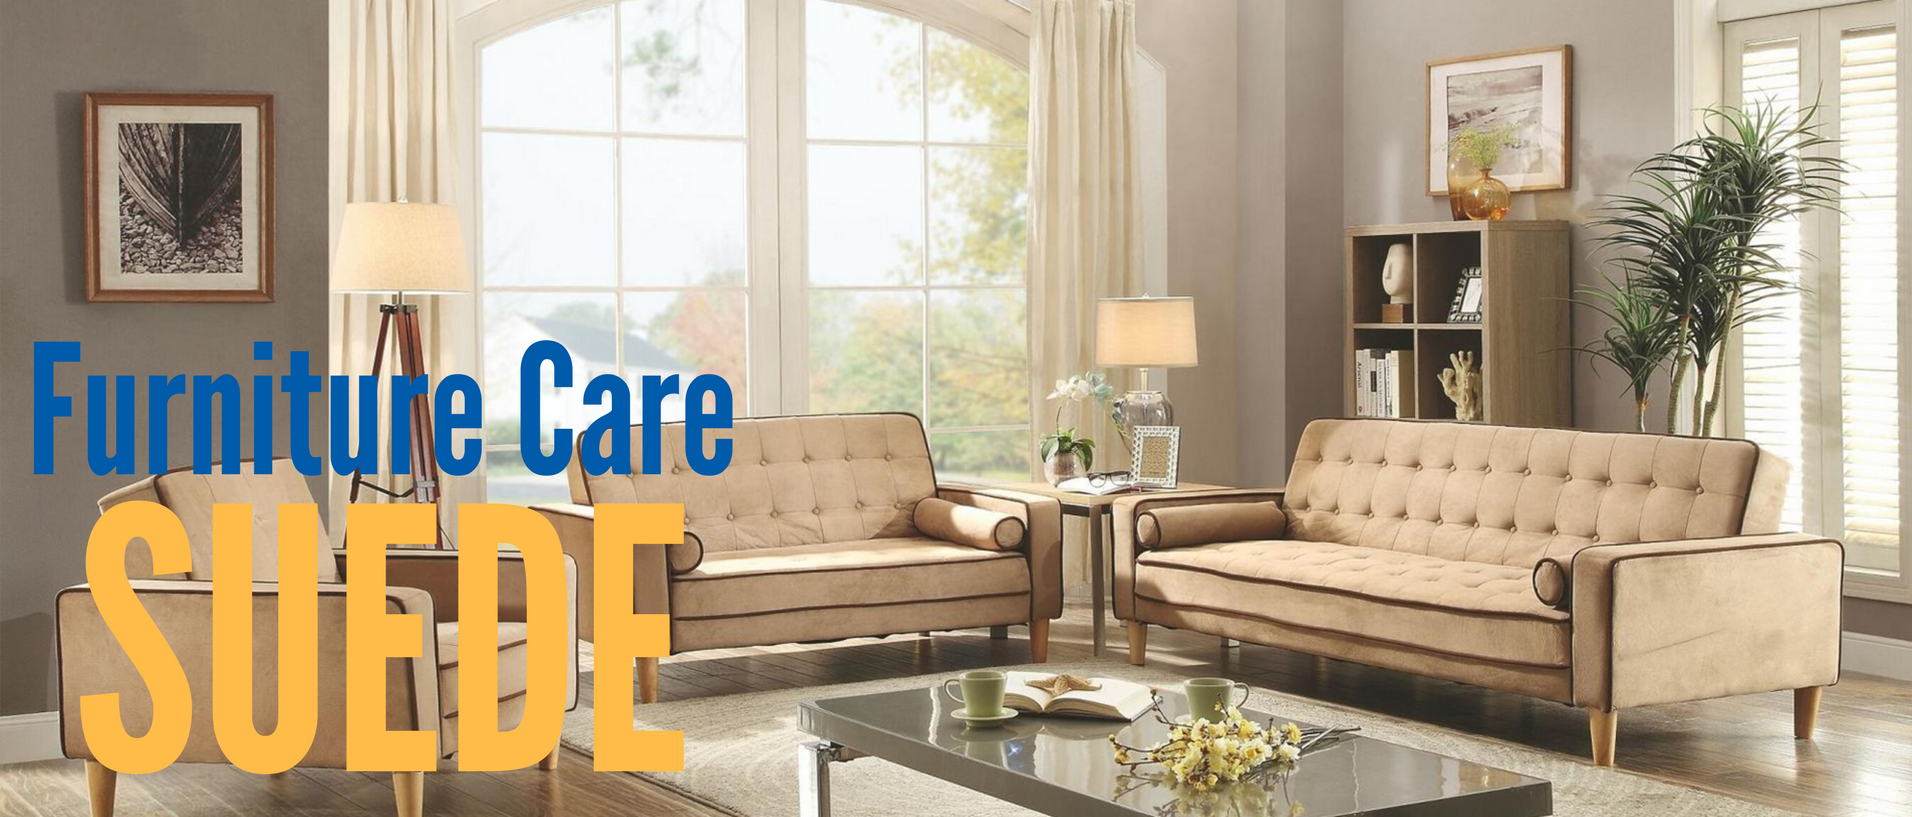 Furniture Care Suede Banner